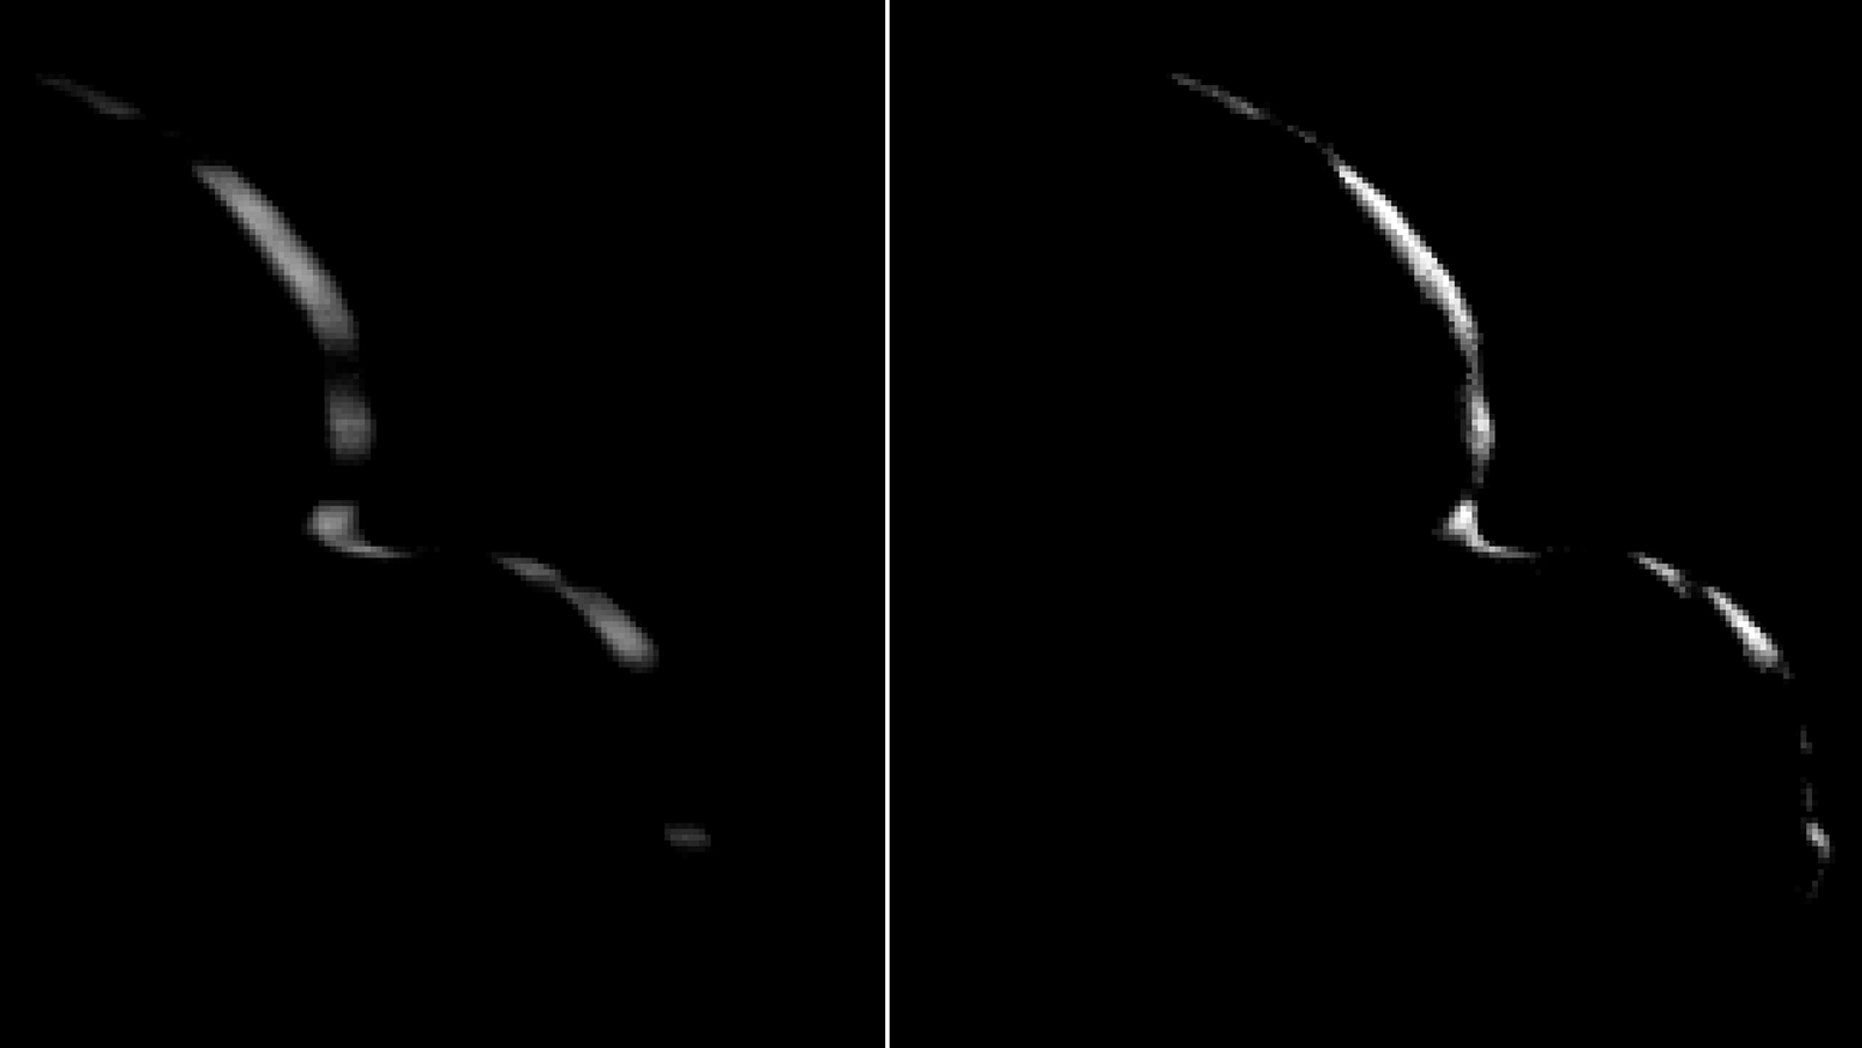 New Horizons took this photo of Ultima Thule on January 1, 2019, when NASA's space was 5,494 miles (8,862 kilometers) across. The left image is a